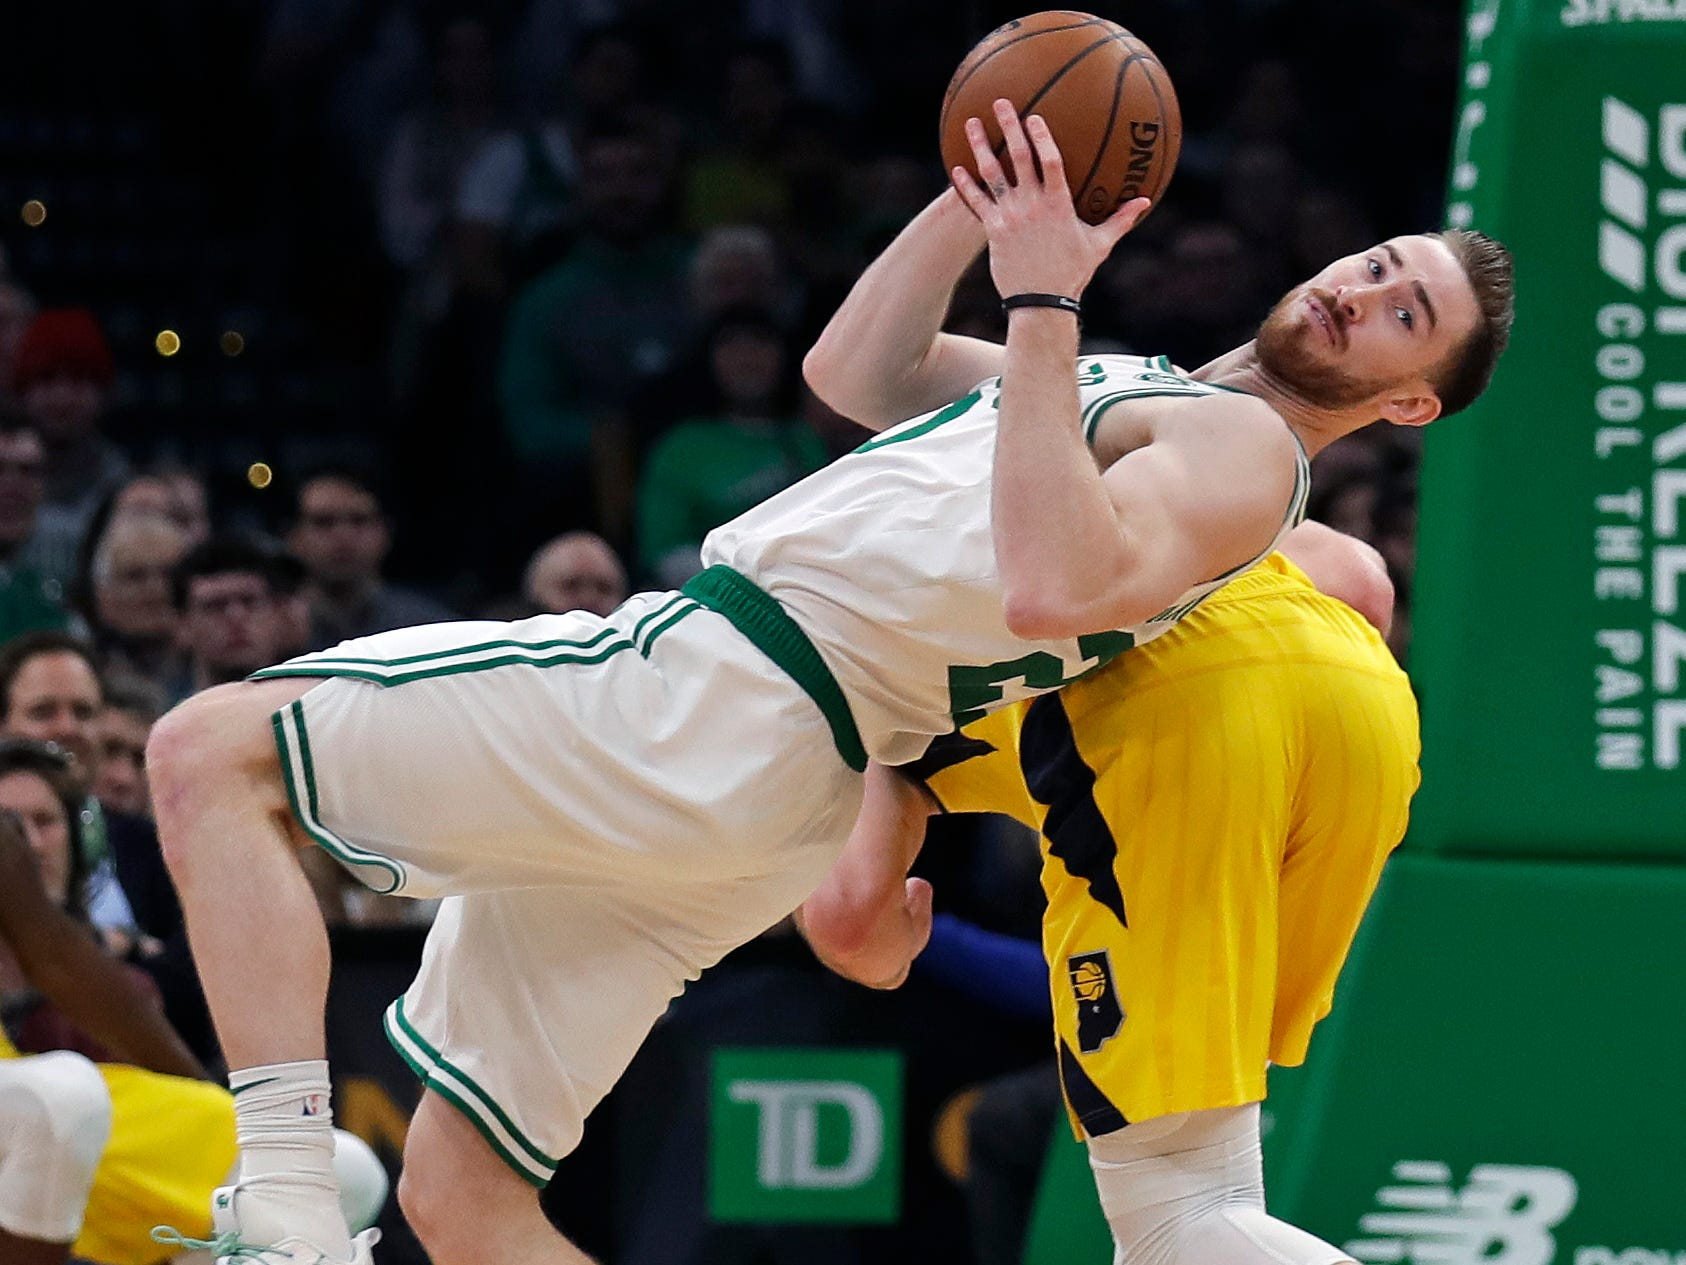 Boston Celtics forward Gordon Hayward, left, looks down court as he grabs a rebound against Indiana Pacers forward Domantas Sabonis, rear, during the first quarter of an NBA basketball game in Boston, Wednesday, Jan. 9, 2019.